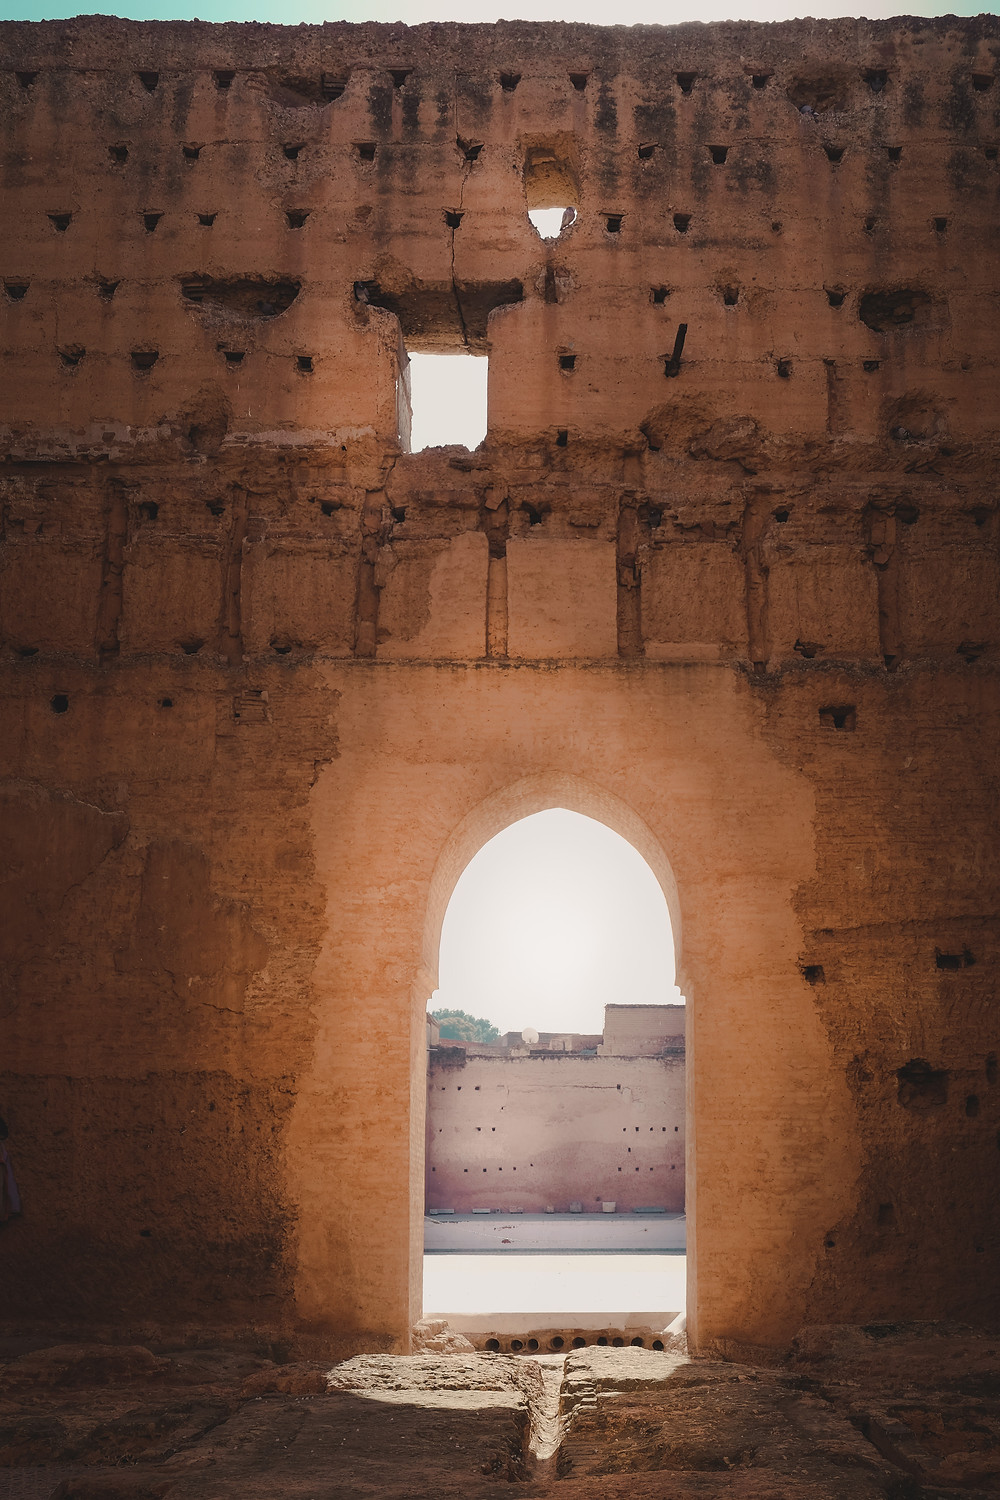 Ruins of a lone doorway of the El-Badii Palace | RollingBear Travels Photography